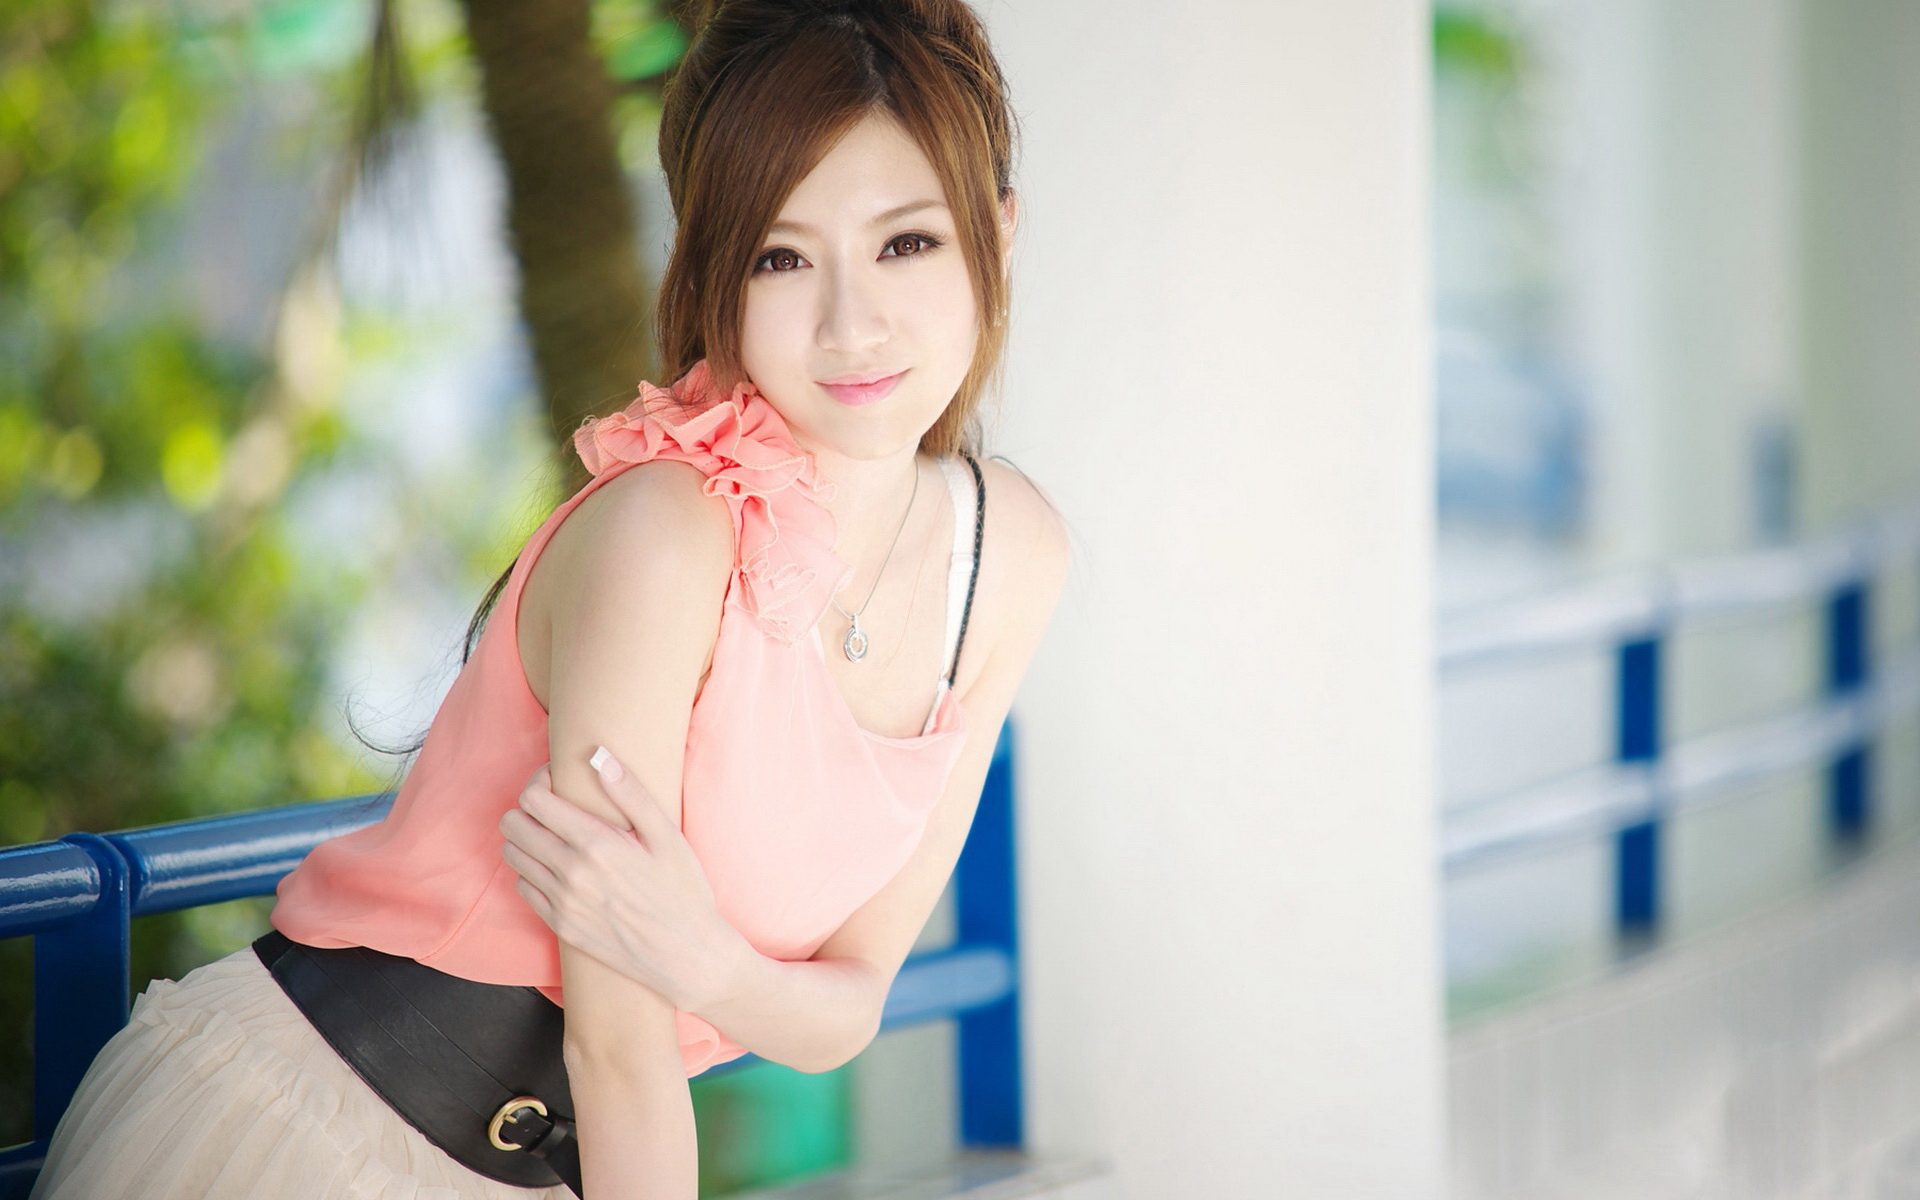 Beautiful-Girl-in-Pink-Dress-Showing-Her-Snowy-Skin-Face-Has-Been-http-ift-tt-hiu-wallpaper-wp4404916